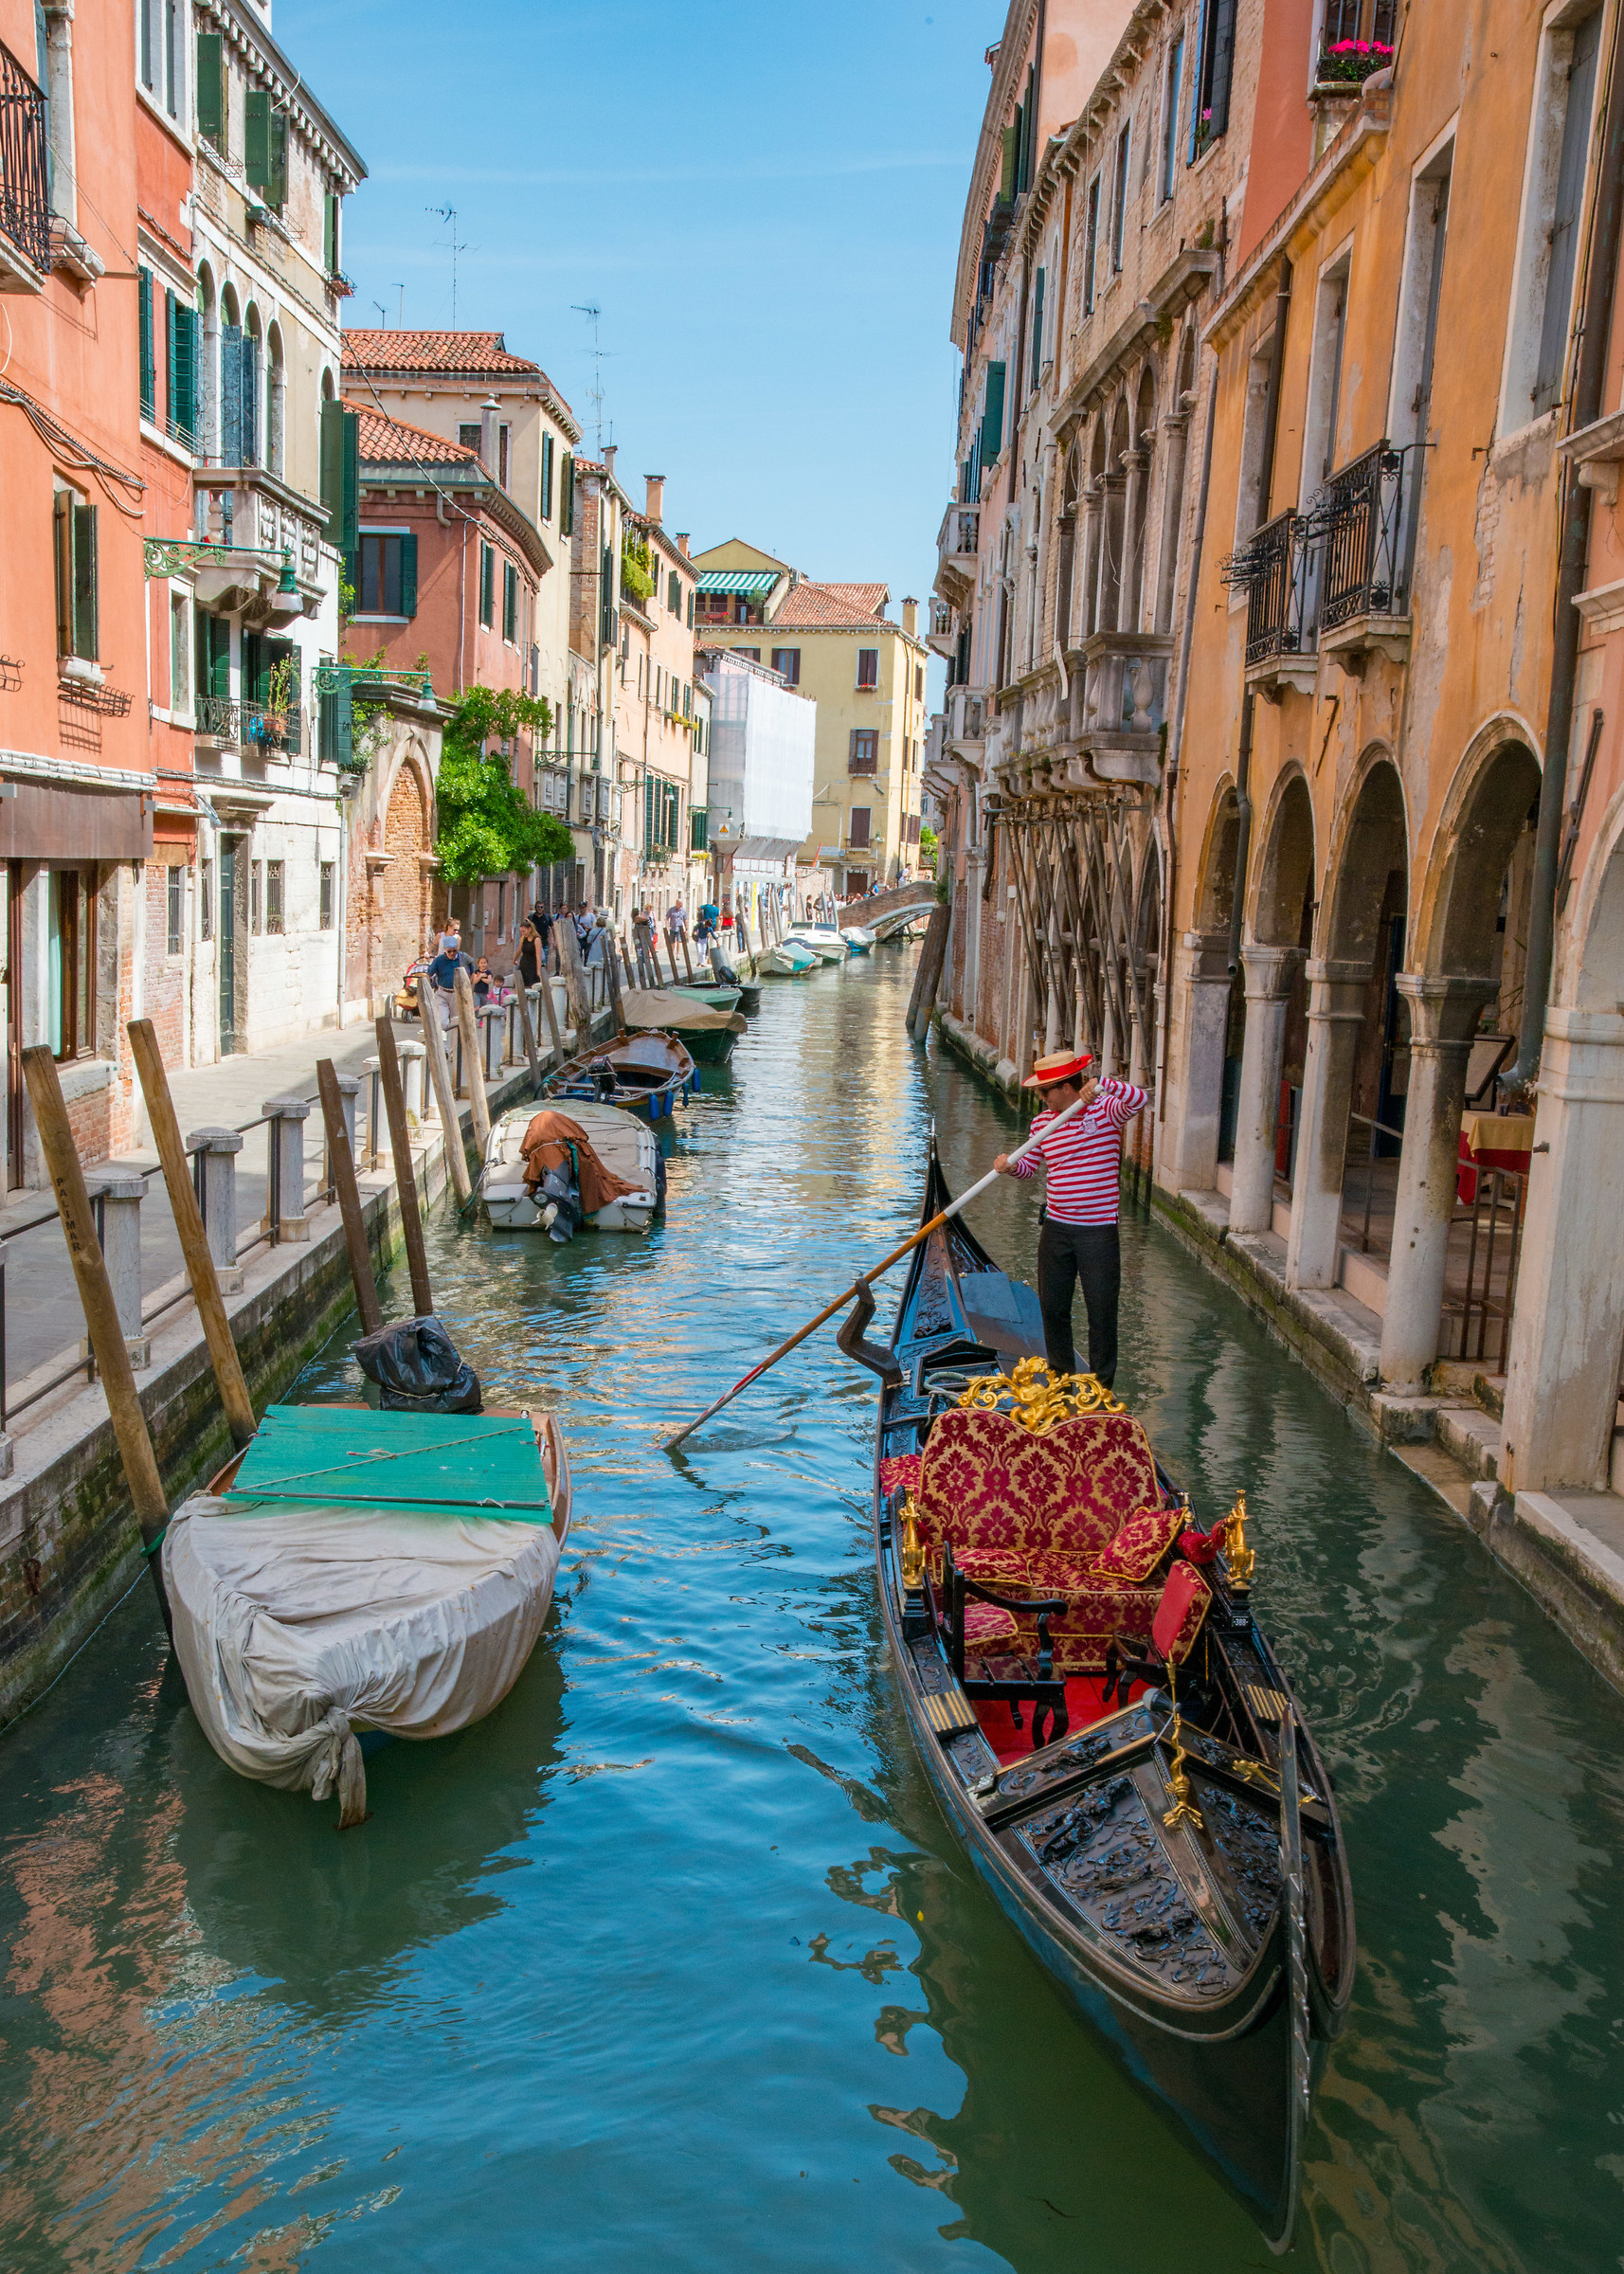 The gondolier...